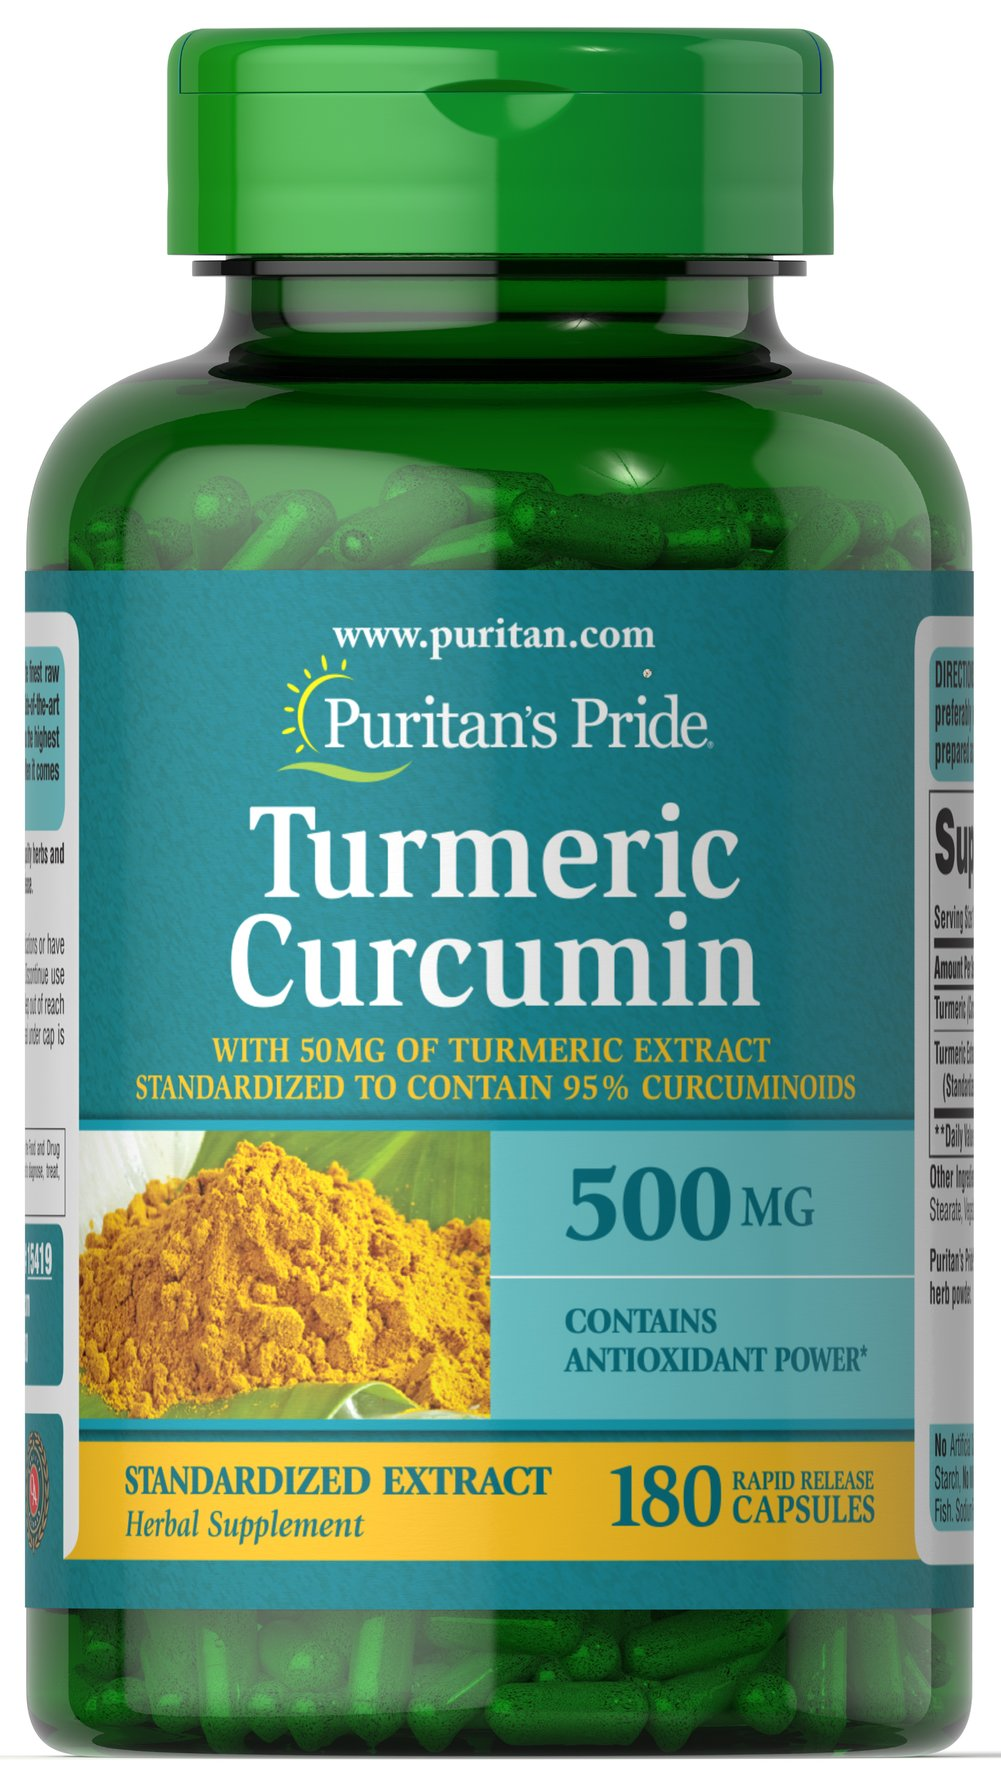 Tumeric Curcumin 450 mg <p> The active ingredients in Turmeric include beneficial flavonoids called Curcuminoids, which are plant-based antioxidants. **</p> <p>Contains antioxidants</p> 180 Capsules 450 mg $14.79